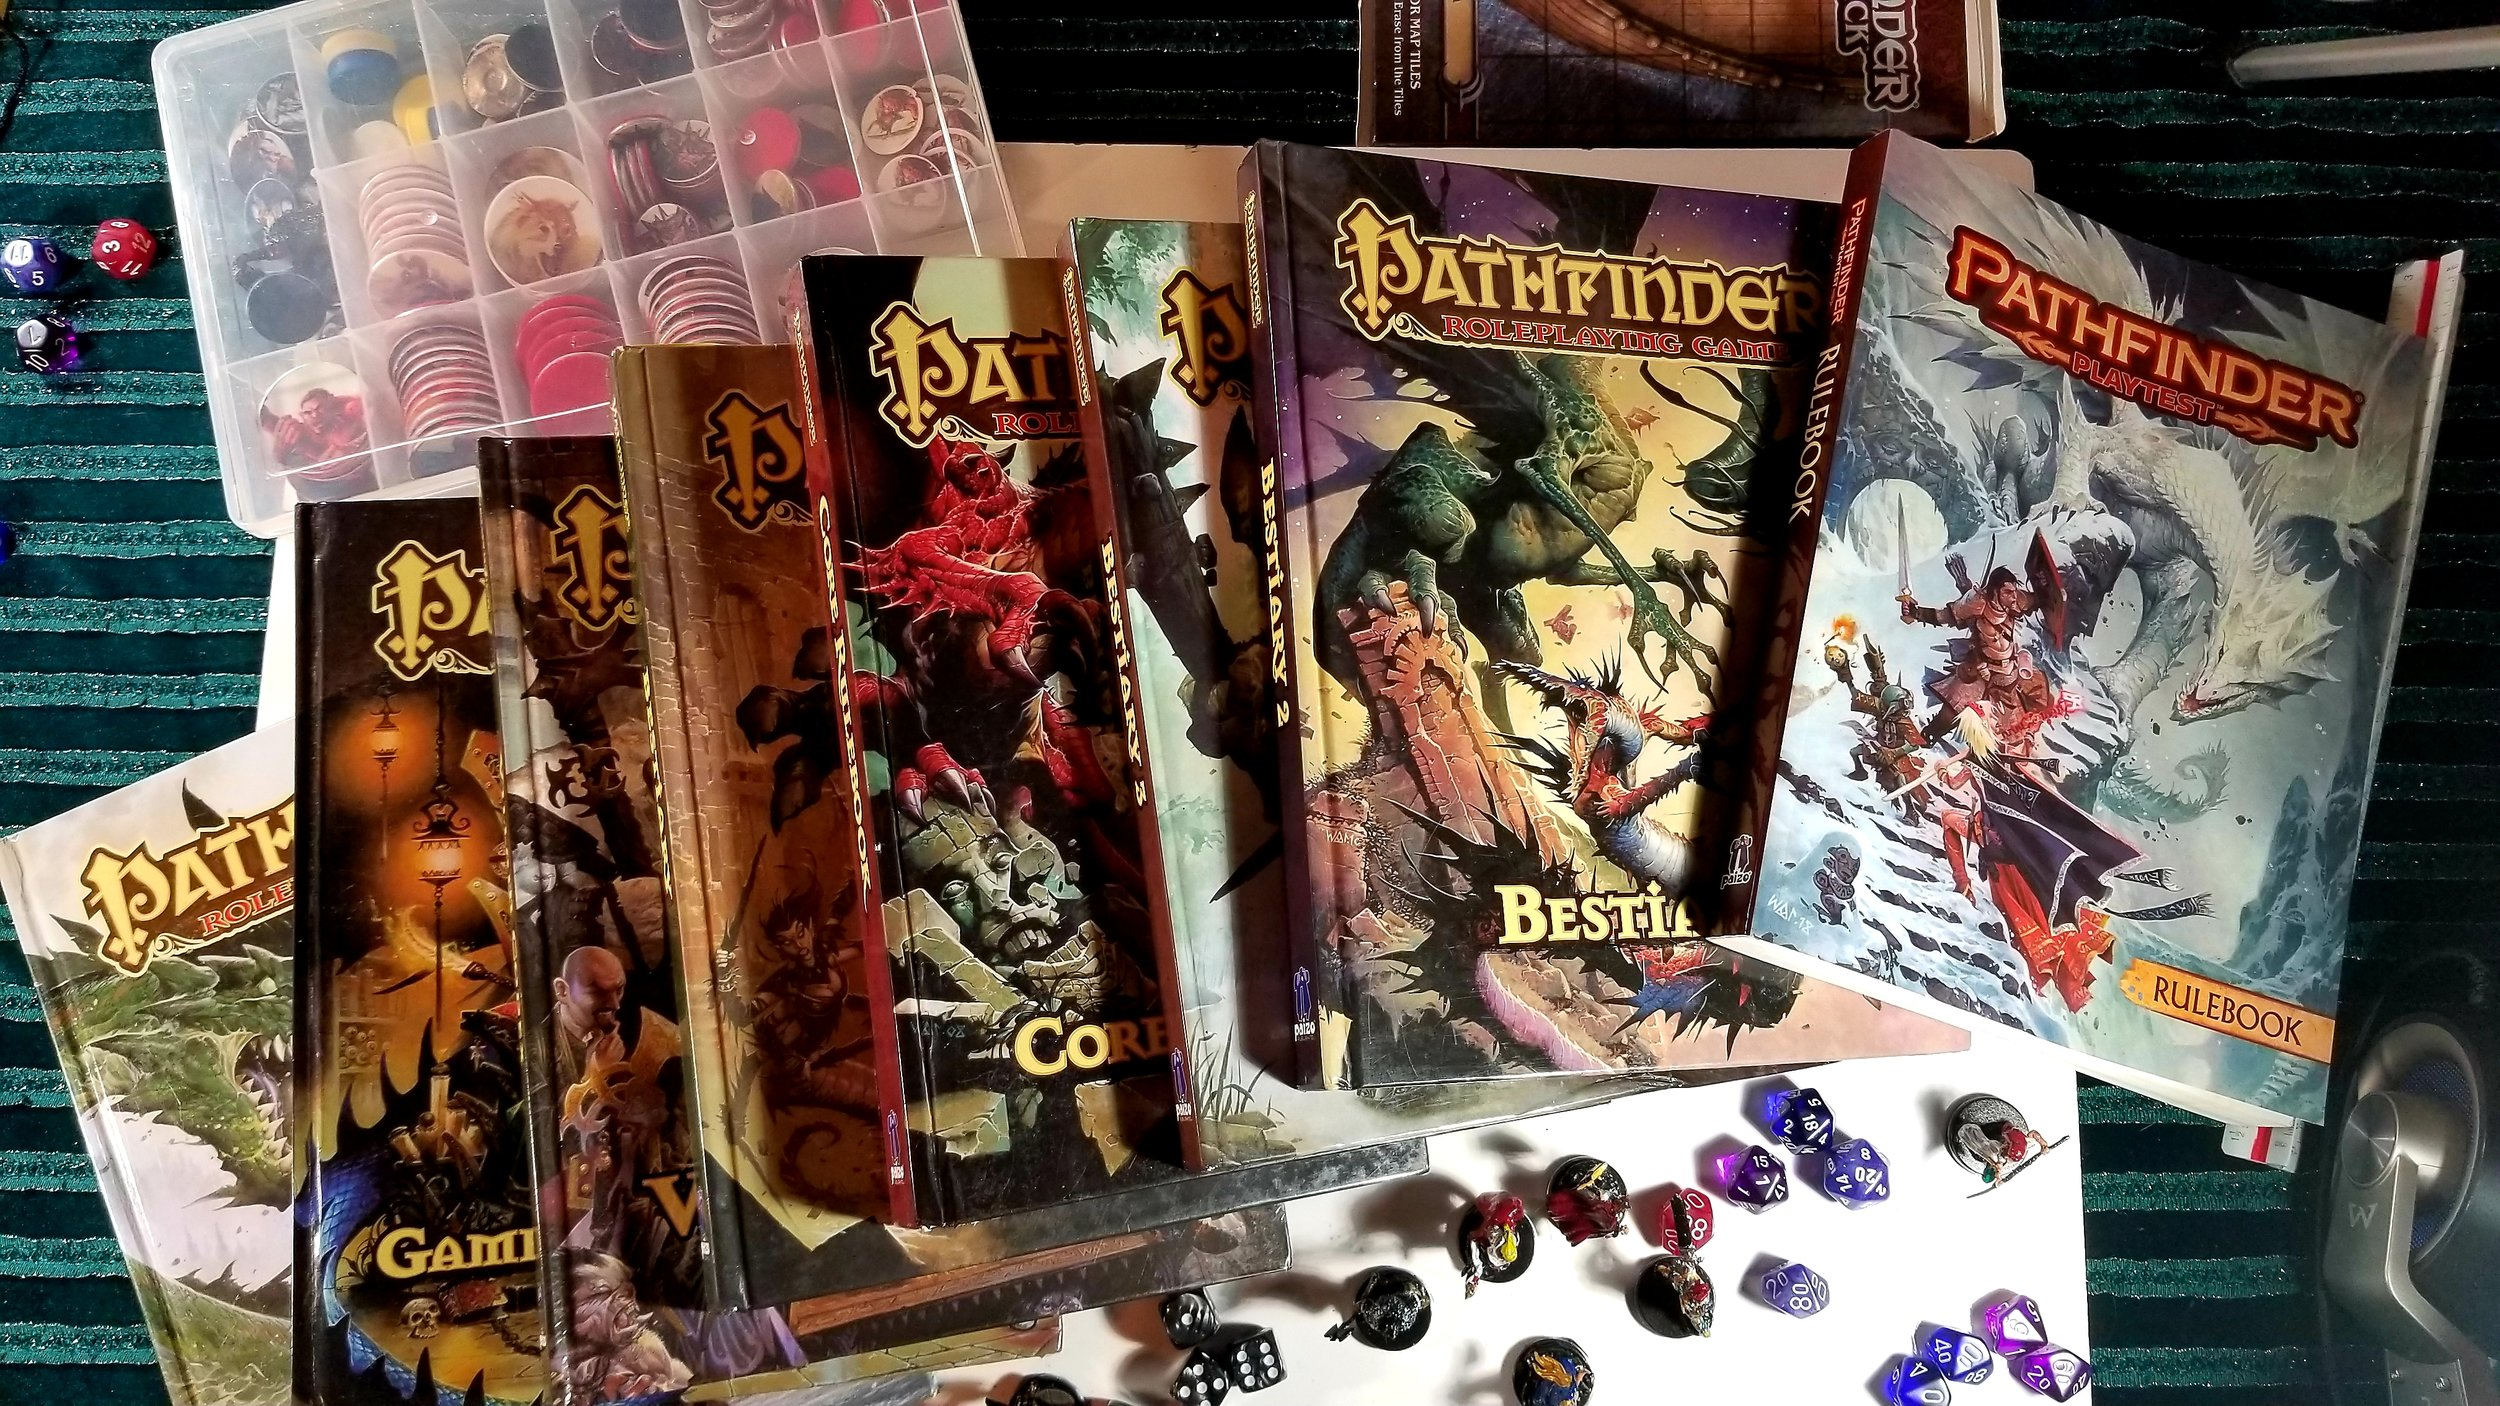 Pathfinder 1st Edition - Books are classics.